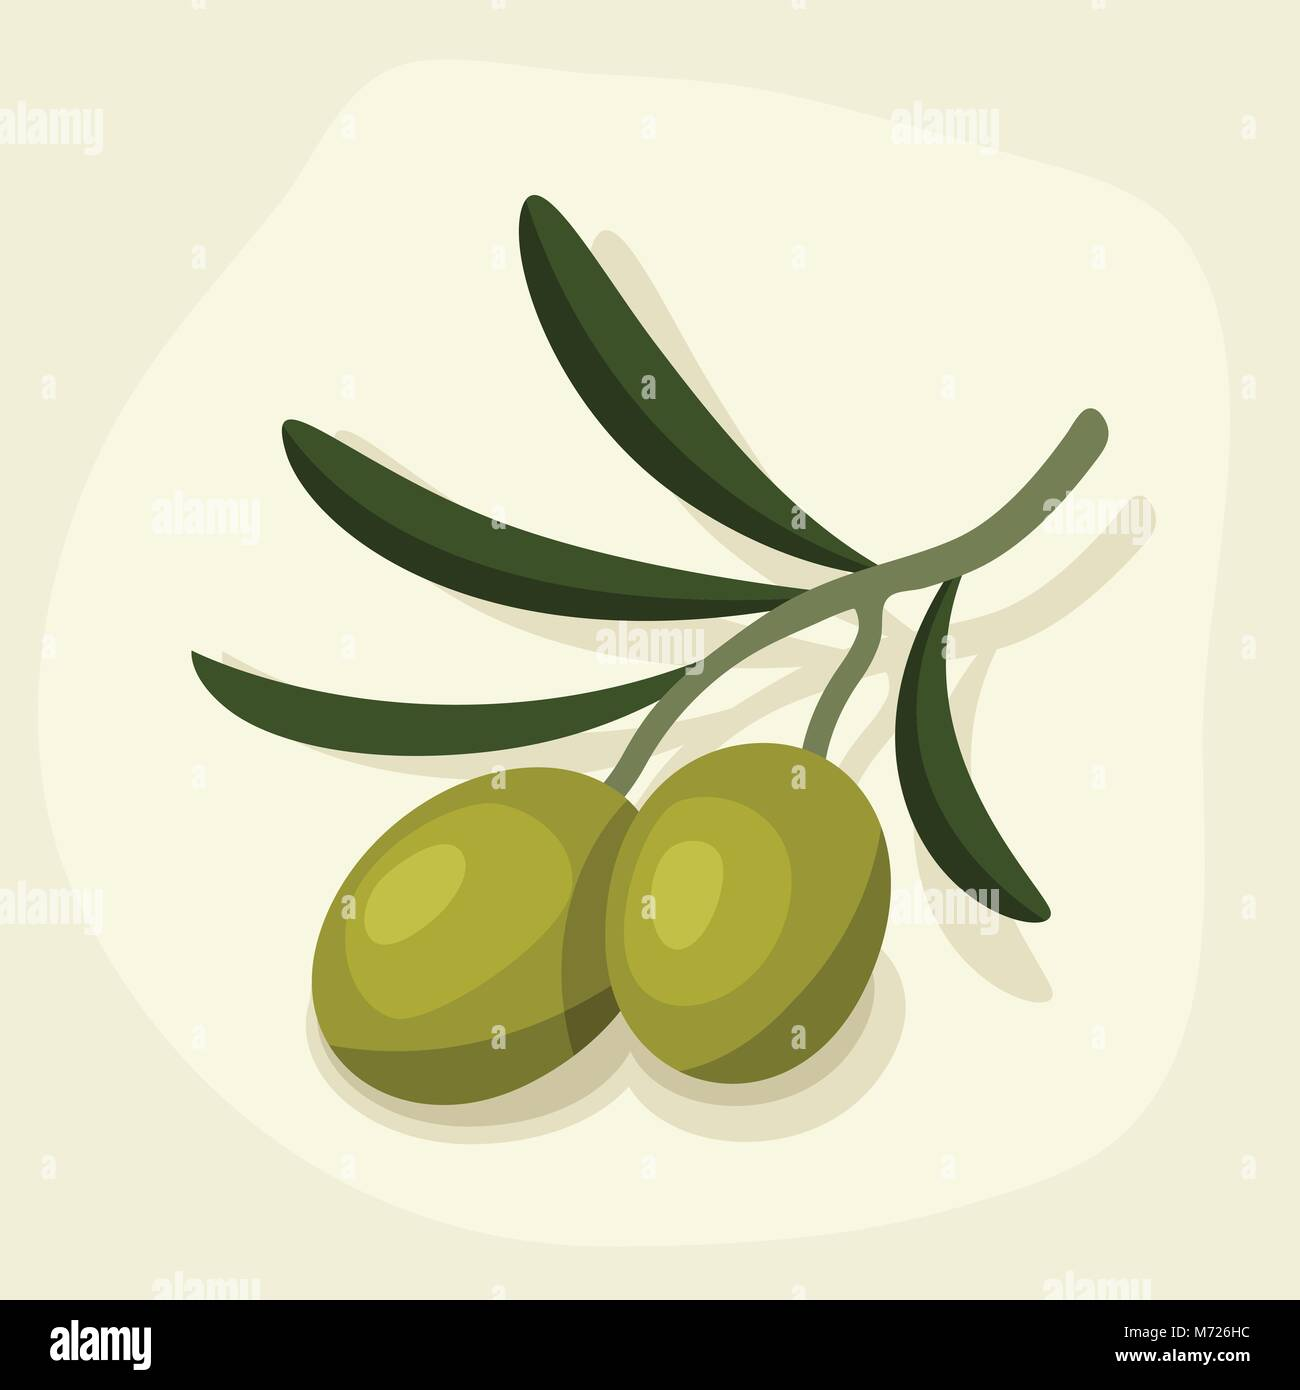 Stylized vector illustration of fresh ripe olive branch - Stock Vector